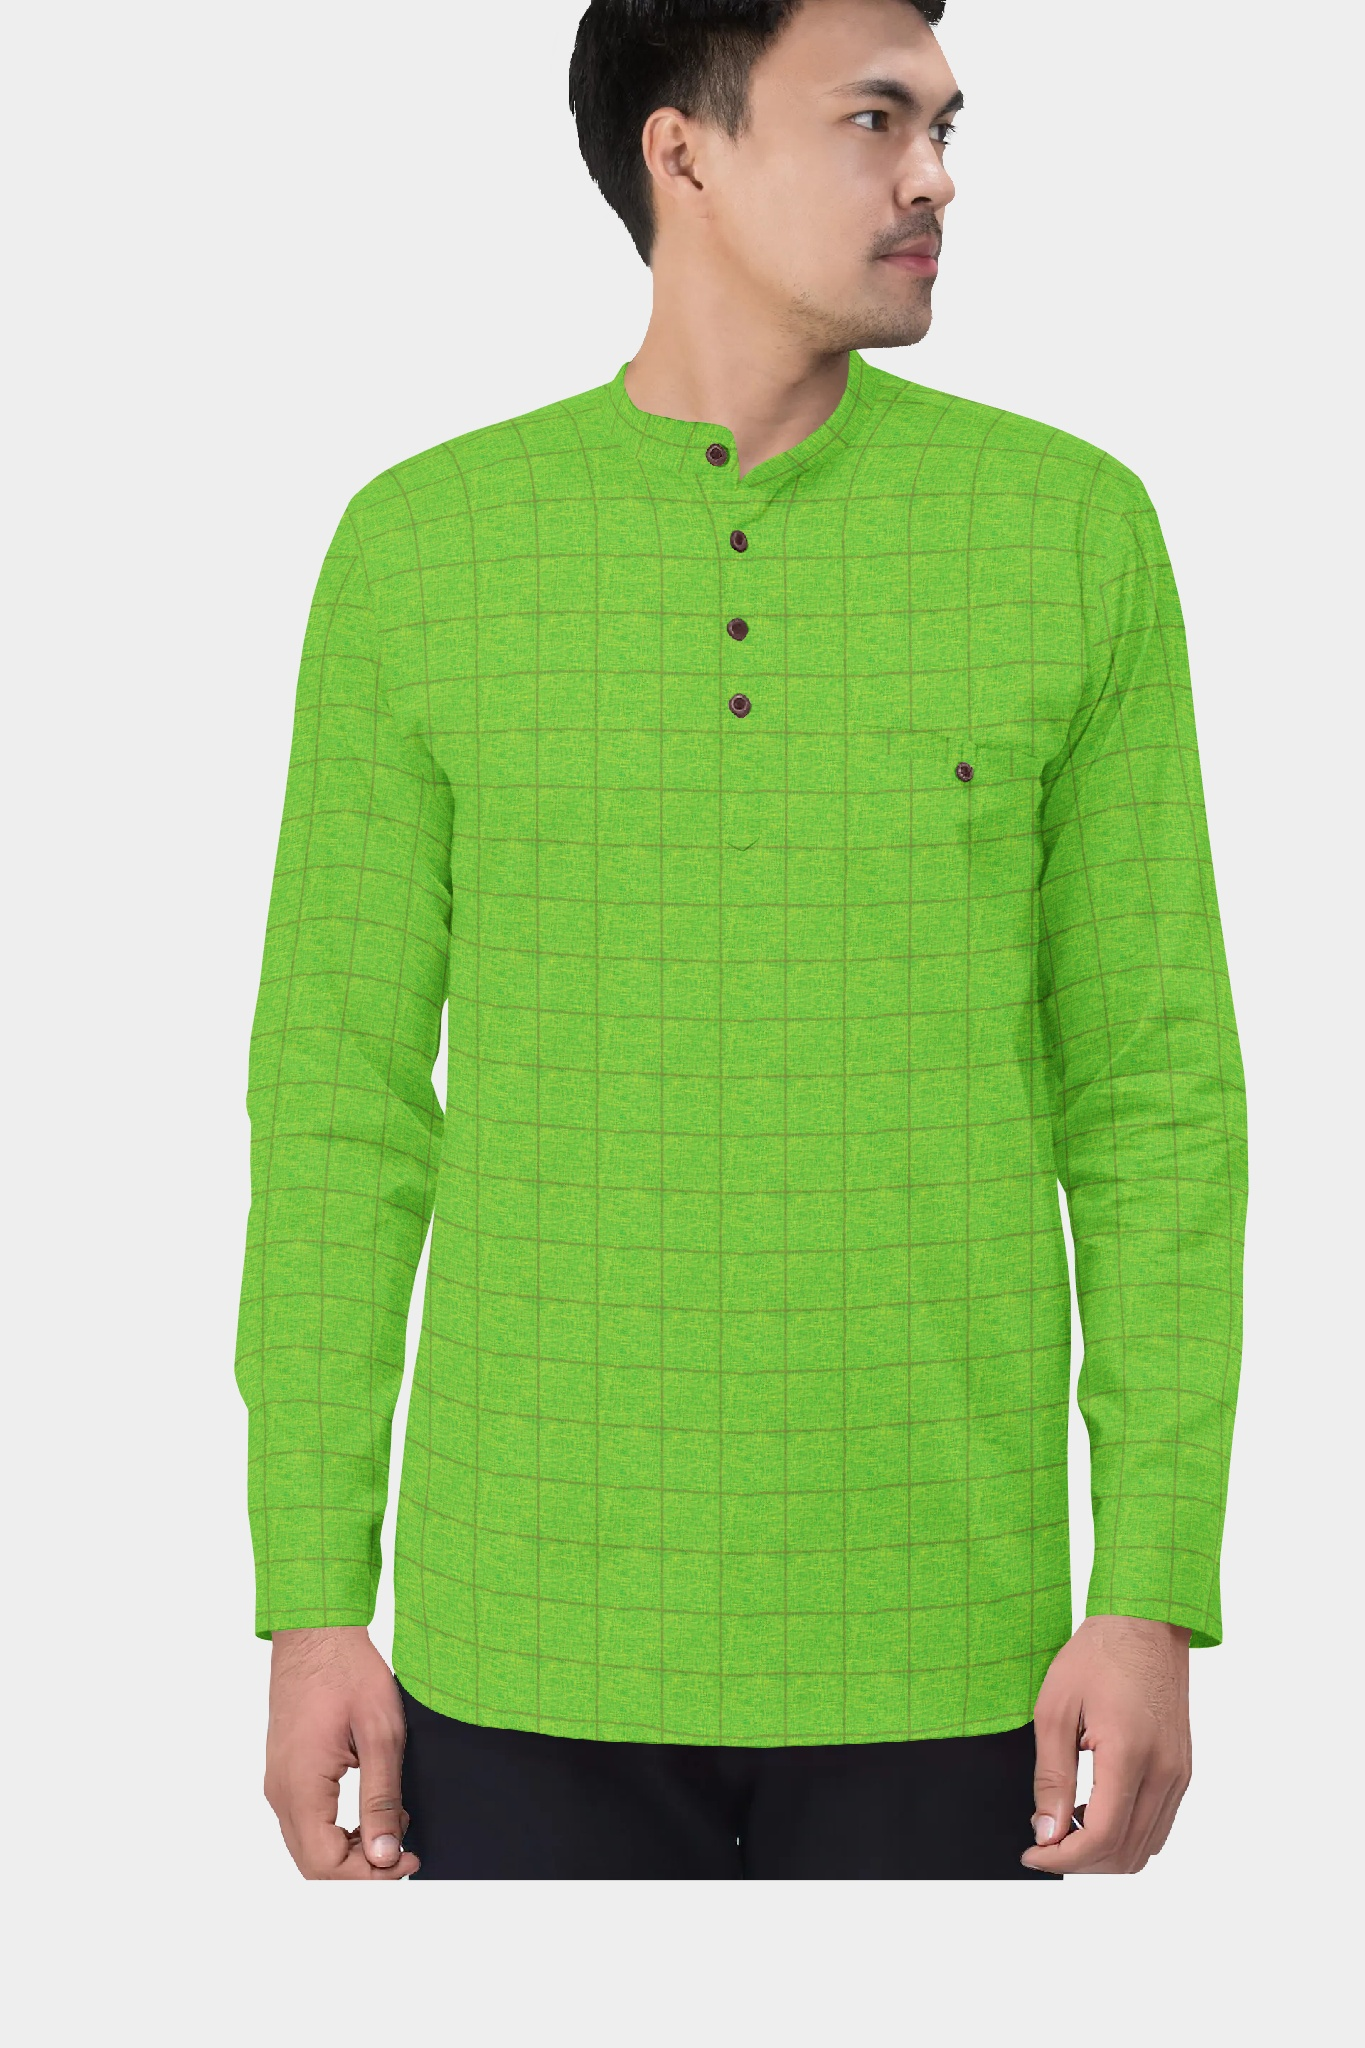 /home/customer/www/fabartcraft.com/public_html/uploadshttps://www.shopolics.com/uploads/images/medium/Green-Golden-Cotton-Short-Kurta-35440.jpg